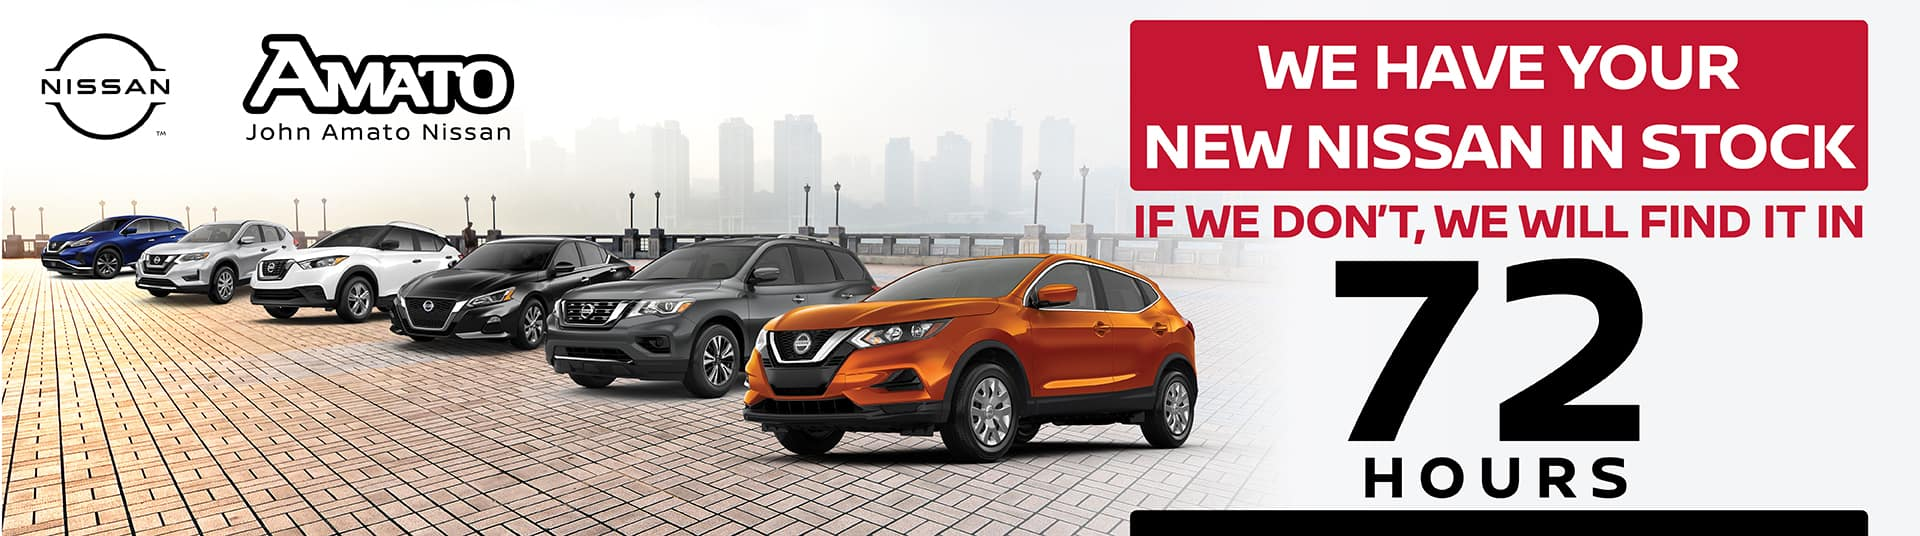 We have your new Nissan in stock!